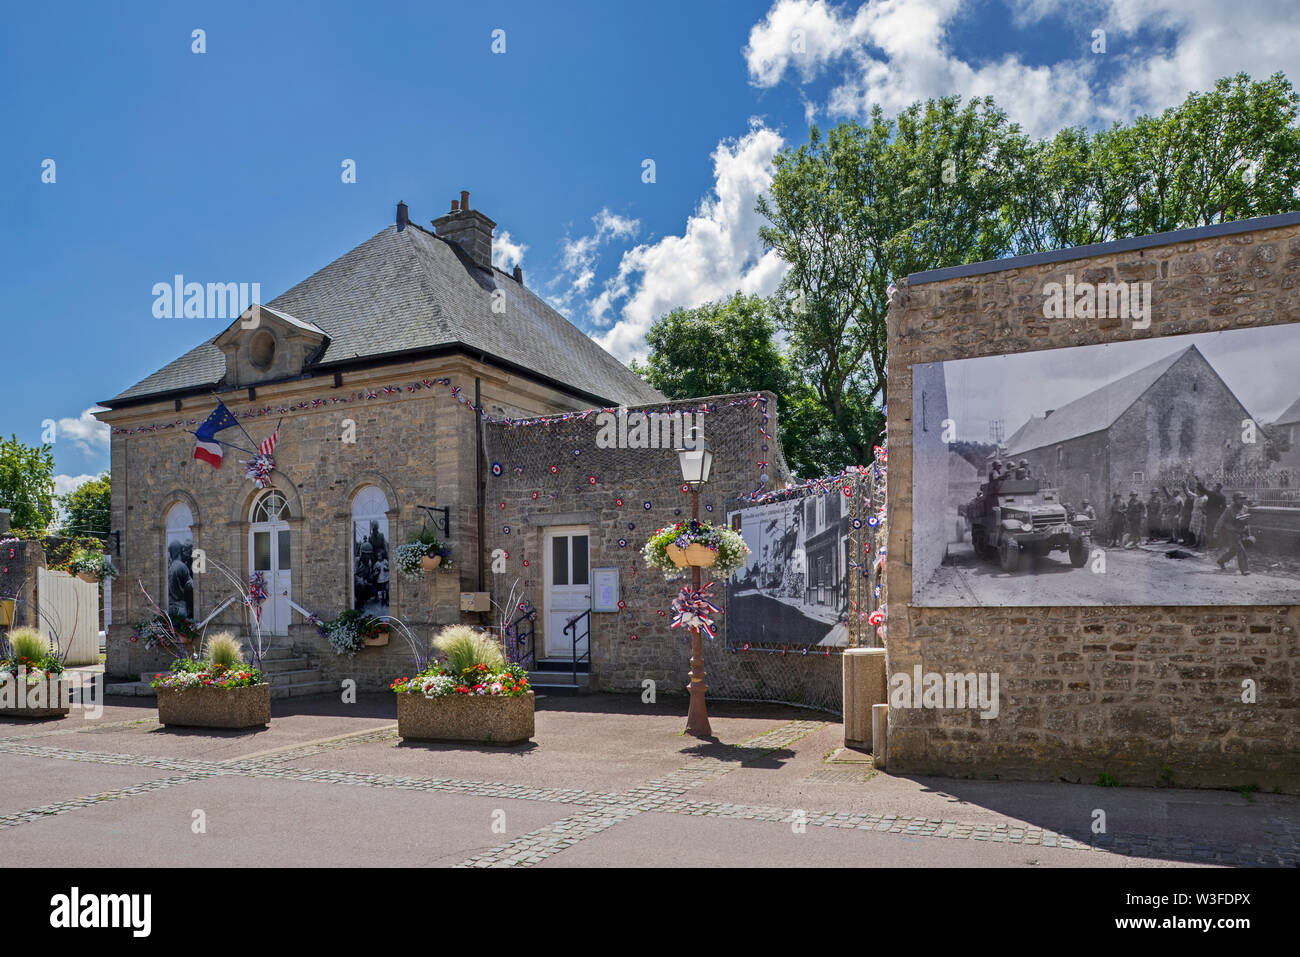 Town hall and historical photos of WW2 US soldiers at the village Colleville-sur-Mer, Calvados, Normandy, France - Stock Image